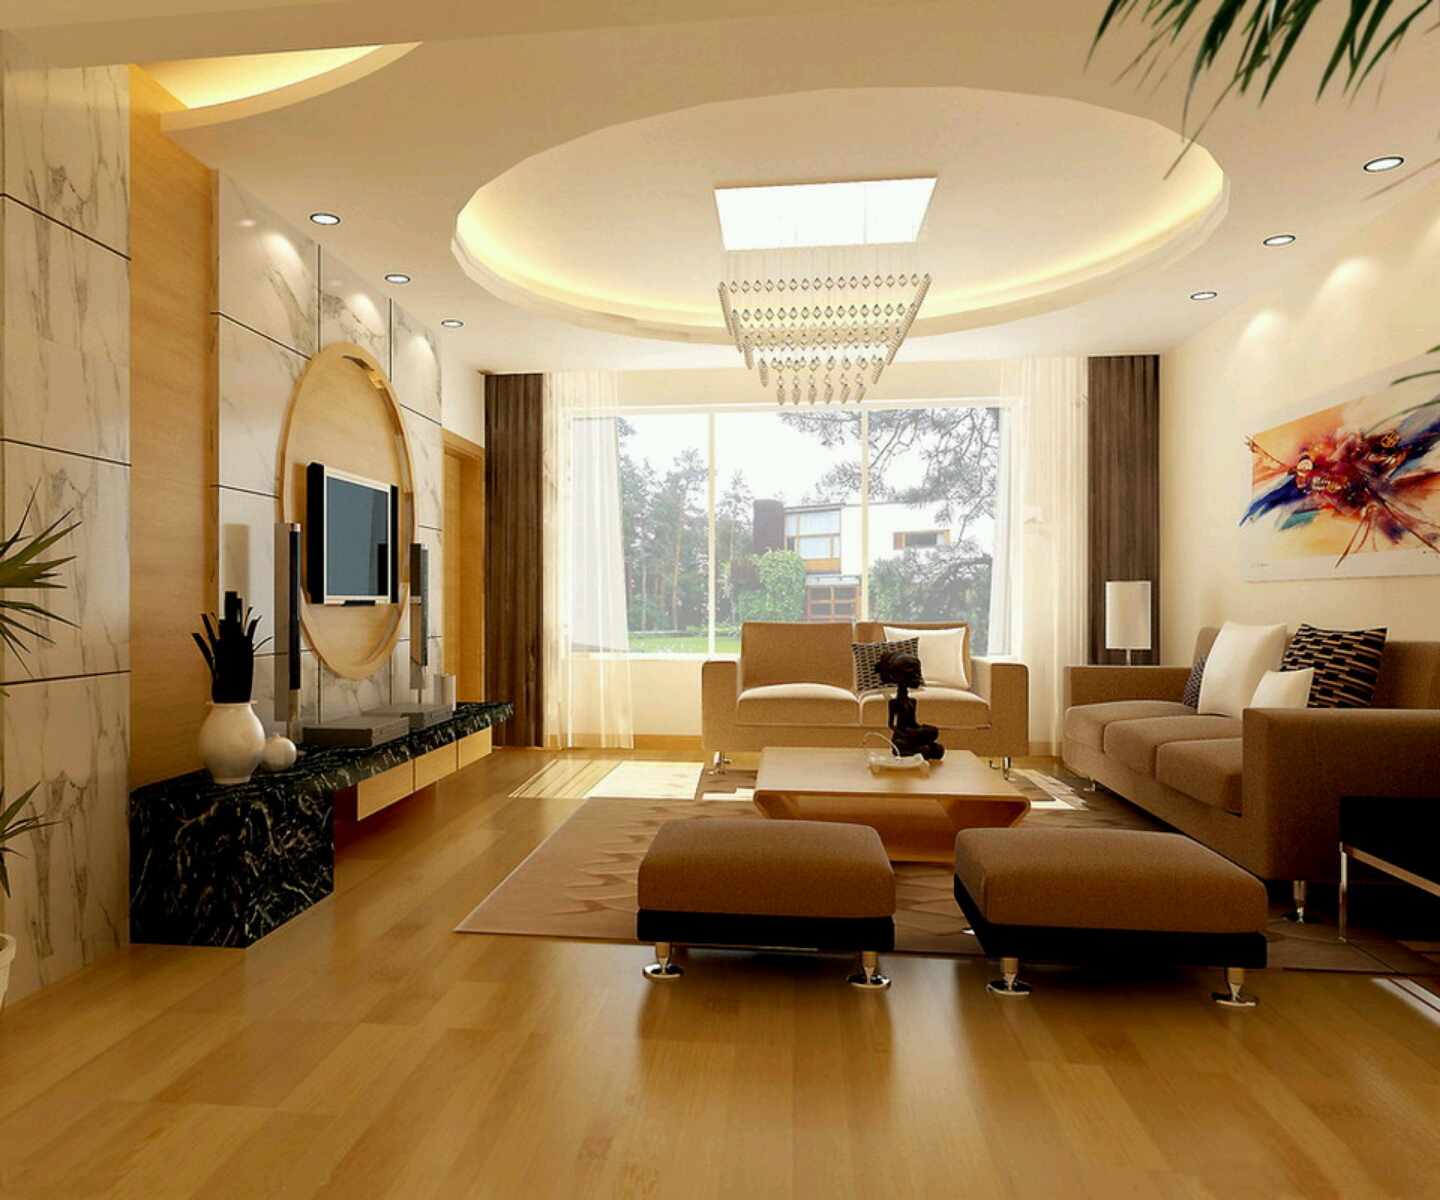 New home designs latest modern interior decoration for Latest living room styles